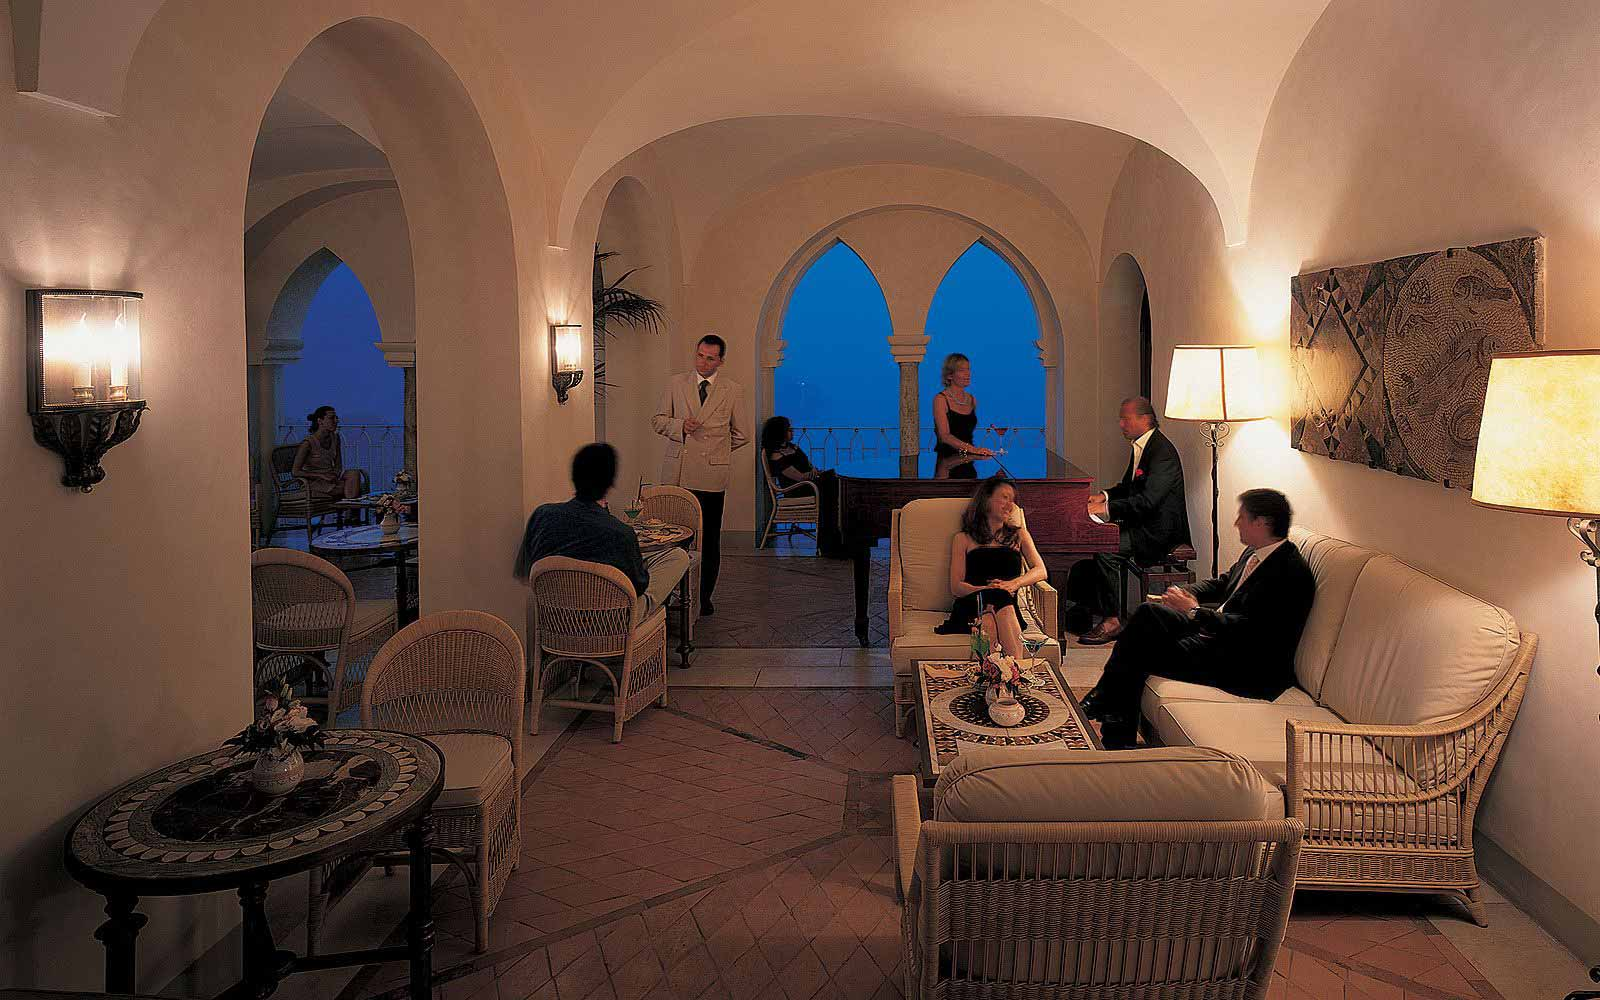 Piano Bar interior at the Belmond Hotel Caruso